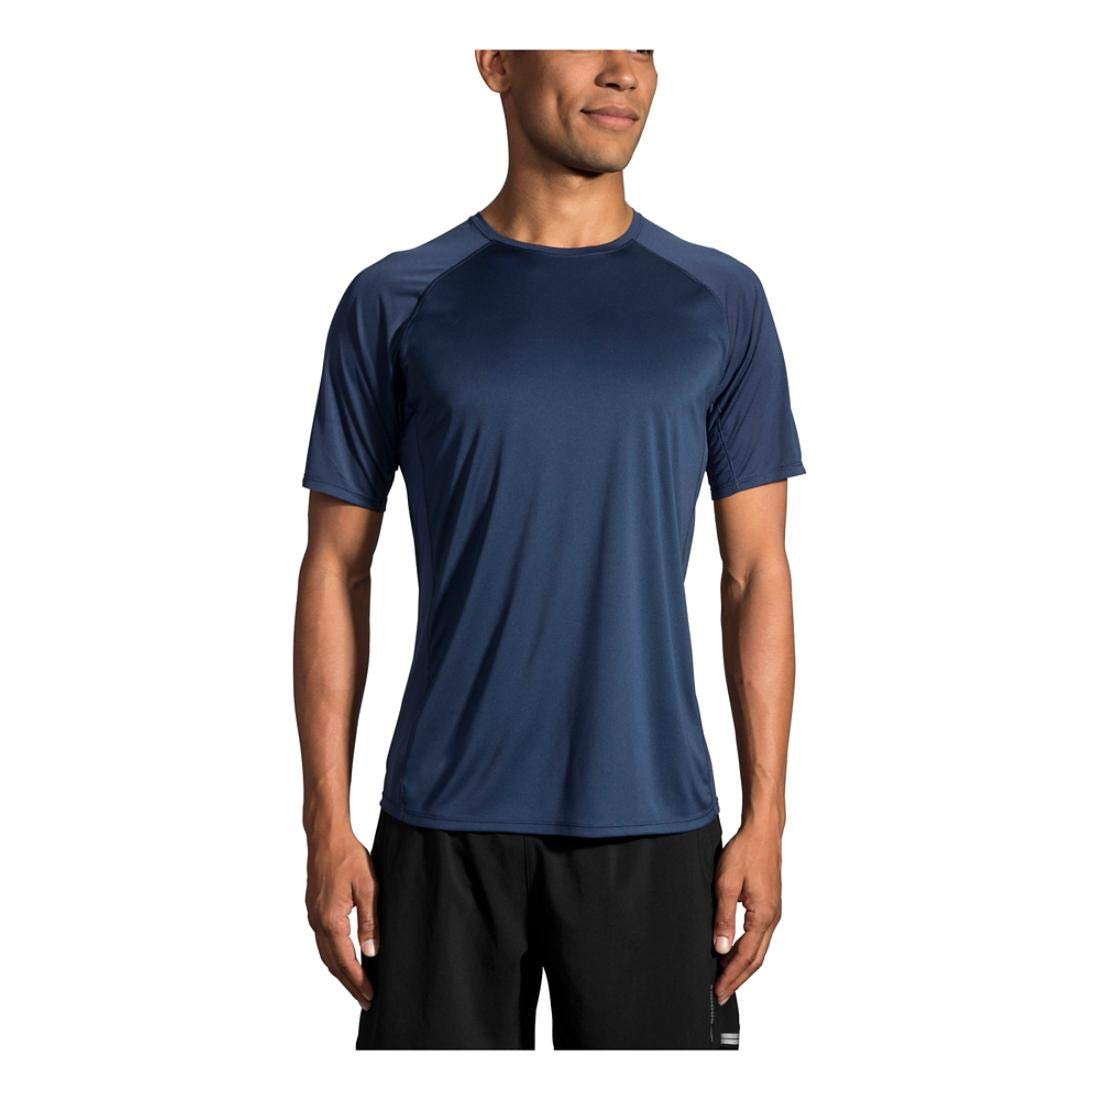 Brooks Men's Stealth Short Sleeve, Indigo, X-Large